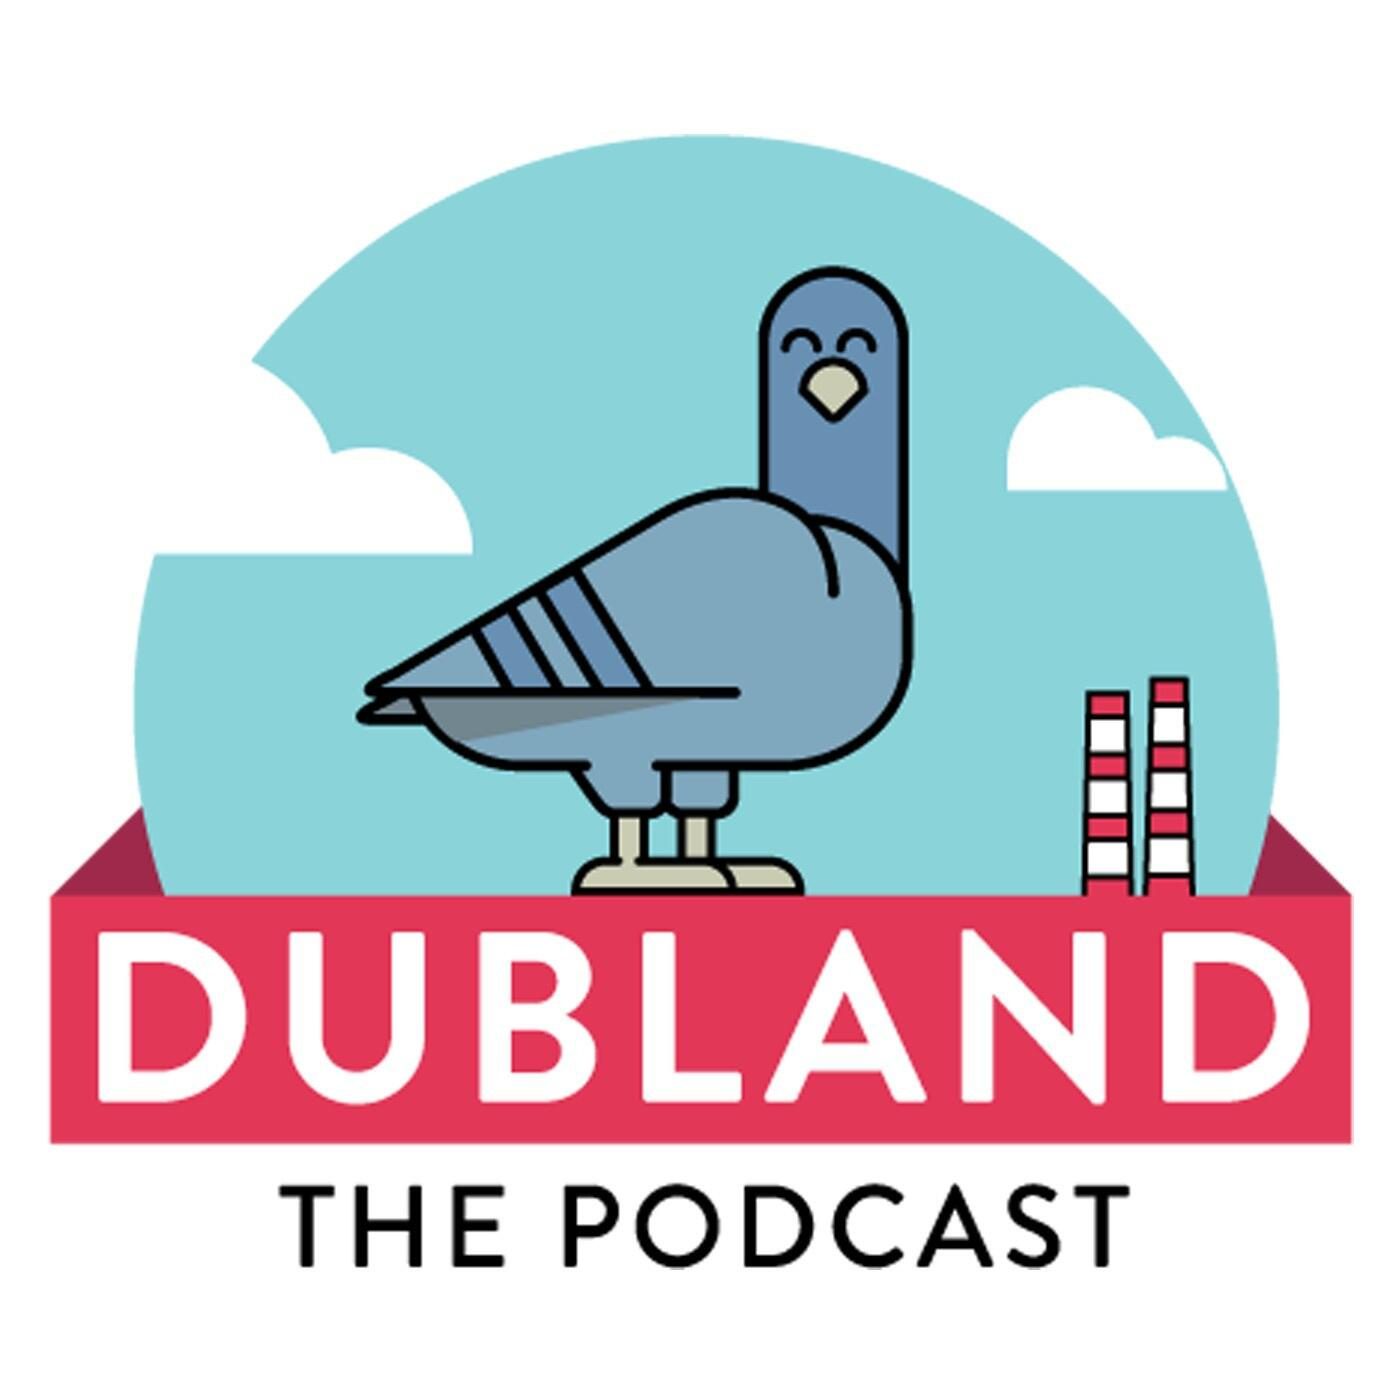 DUBLAND THE PODCAST EPISODE 14